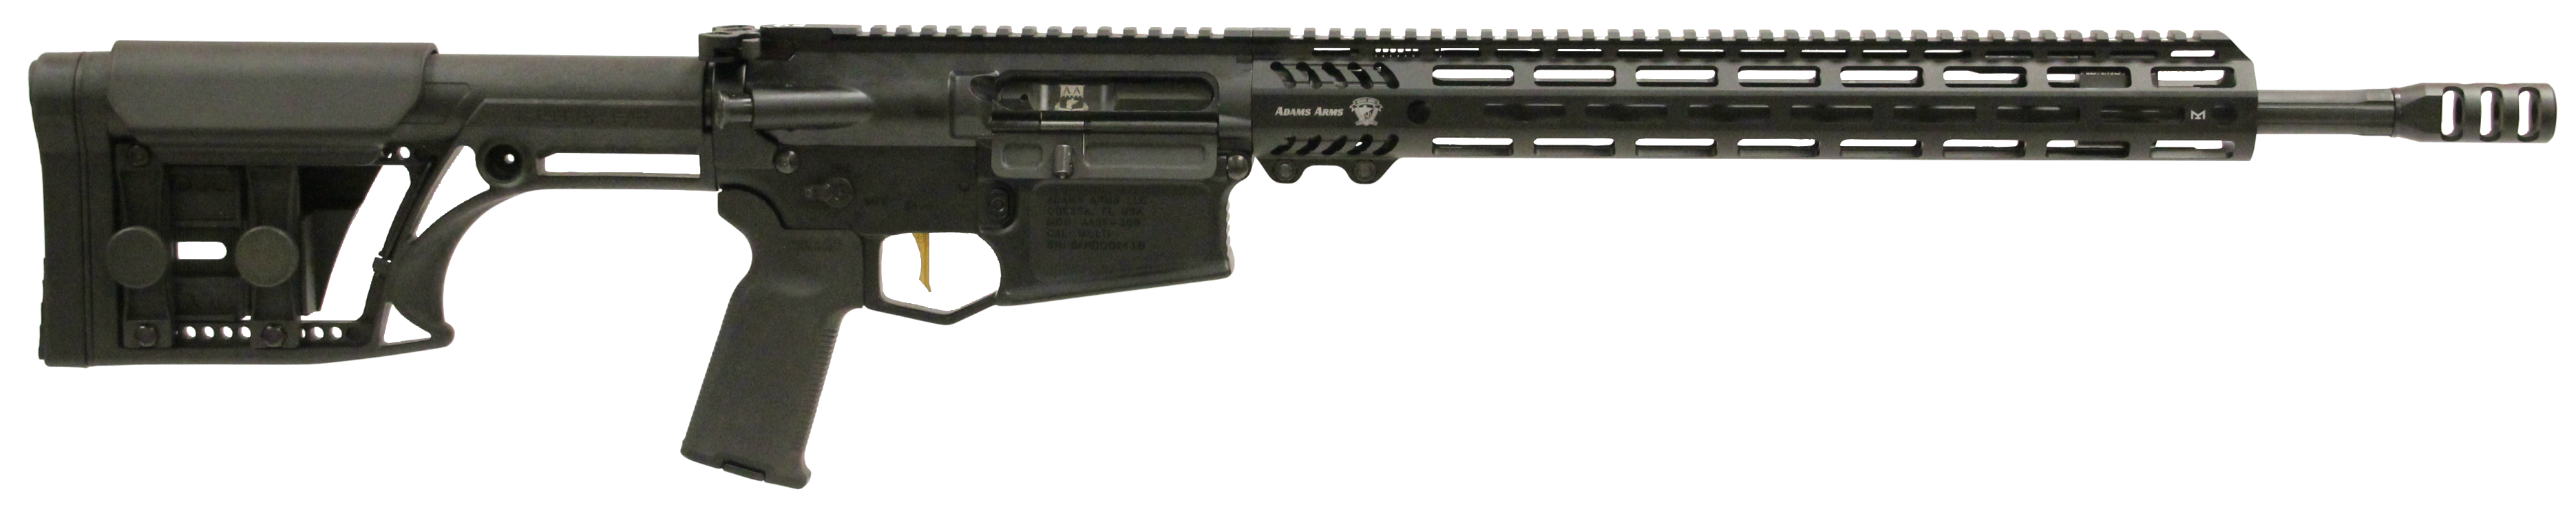 Adams Arms FGAA00247 P3 Rifle Semi-Automatic 308 Winchester/7.62 NATO 18